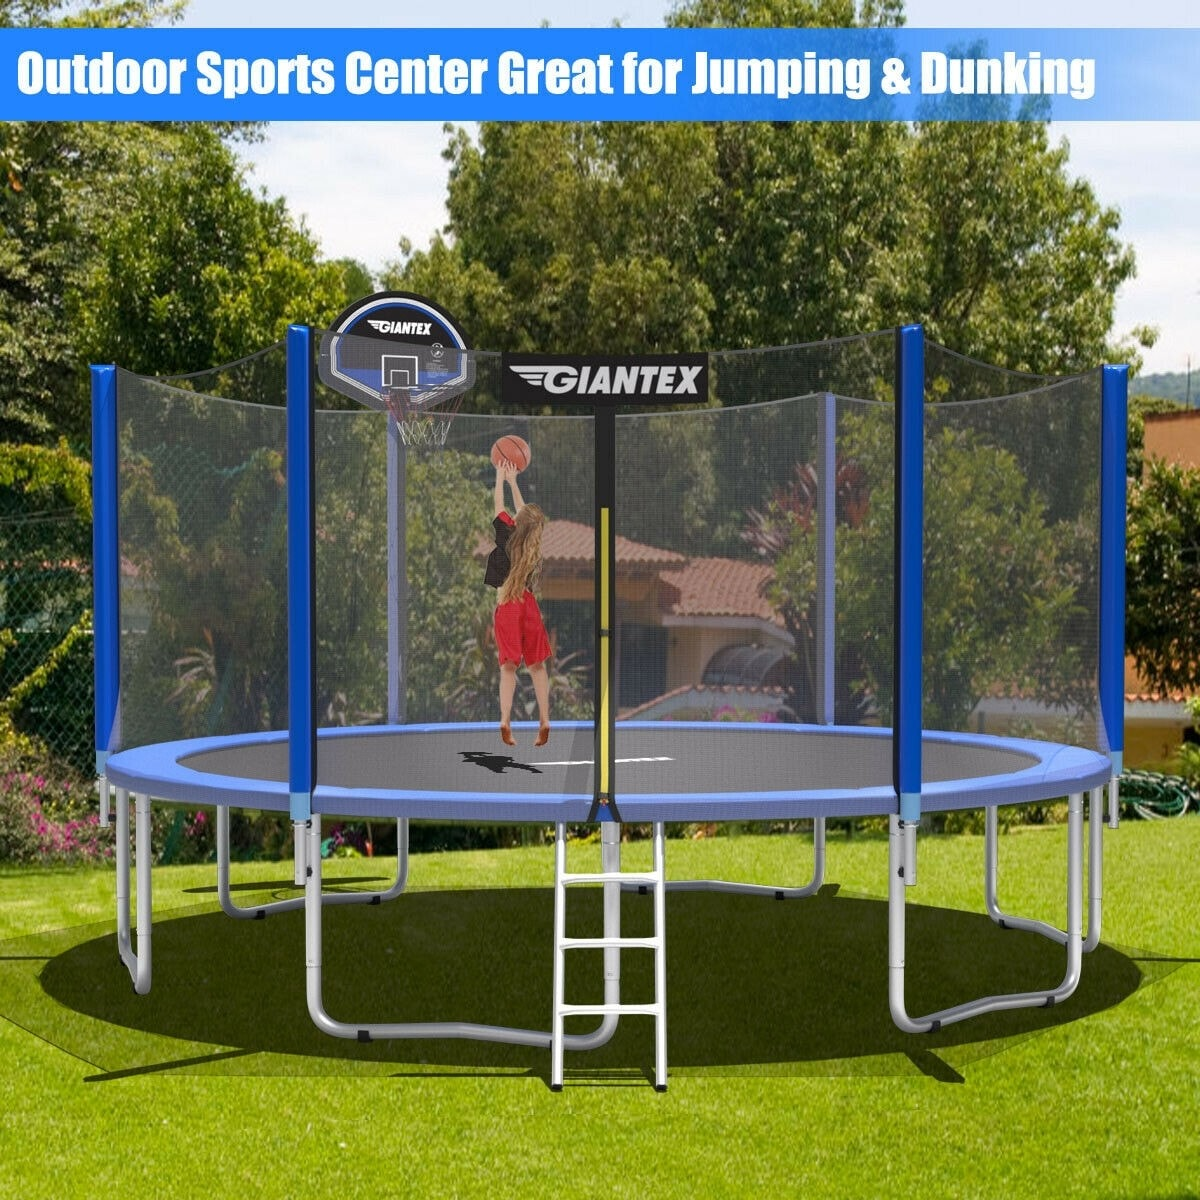 14 ft Round Trampoline with Safety Enclosure Net and Basketball Hoop